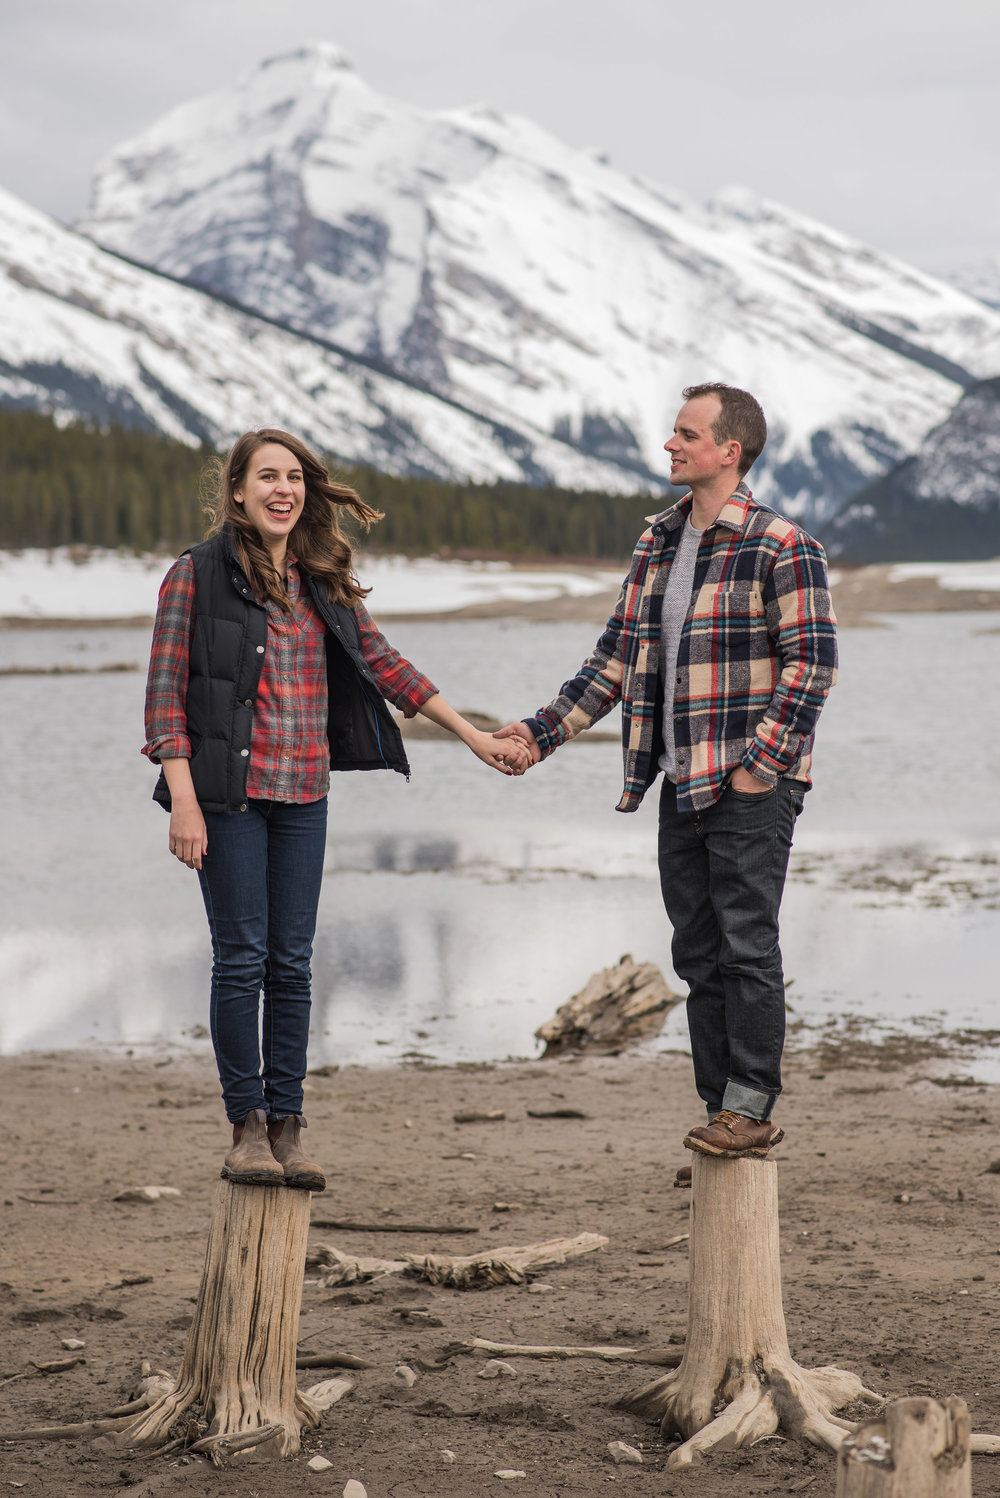 Canmore wedding photographer engagement kananaskis plaid cute